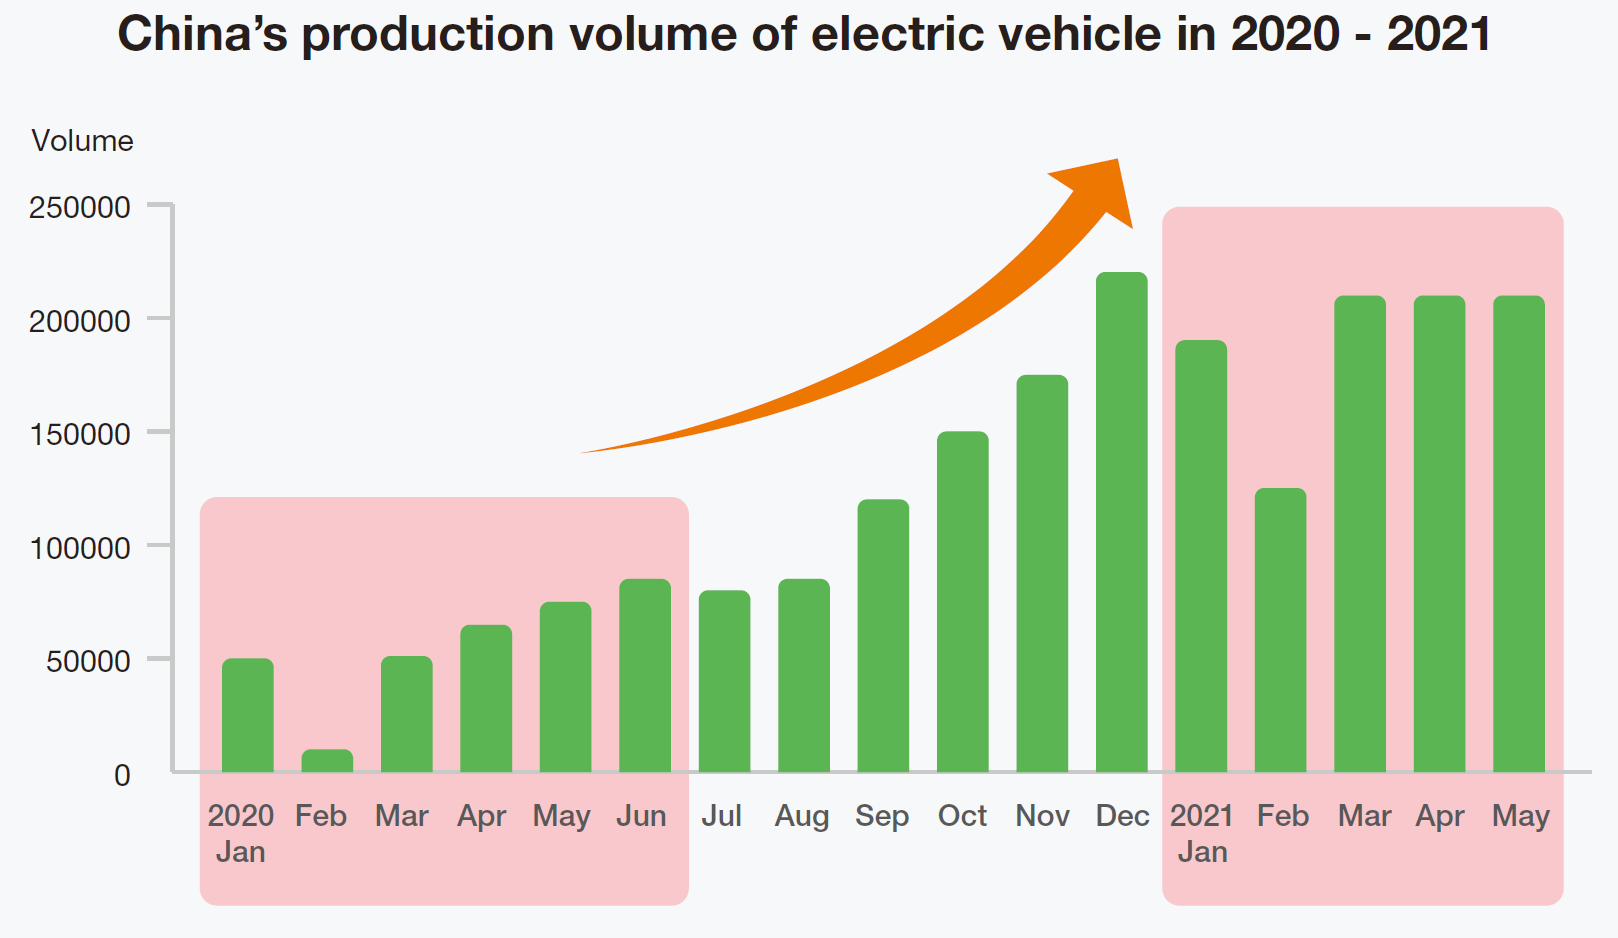 The production volume of electric wehicles in China